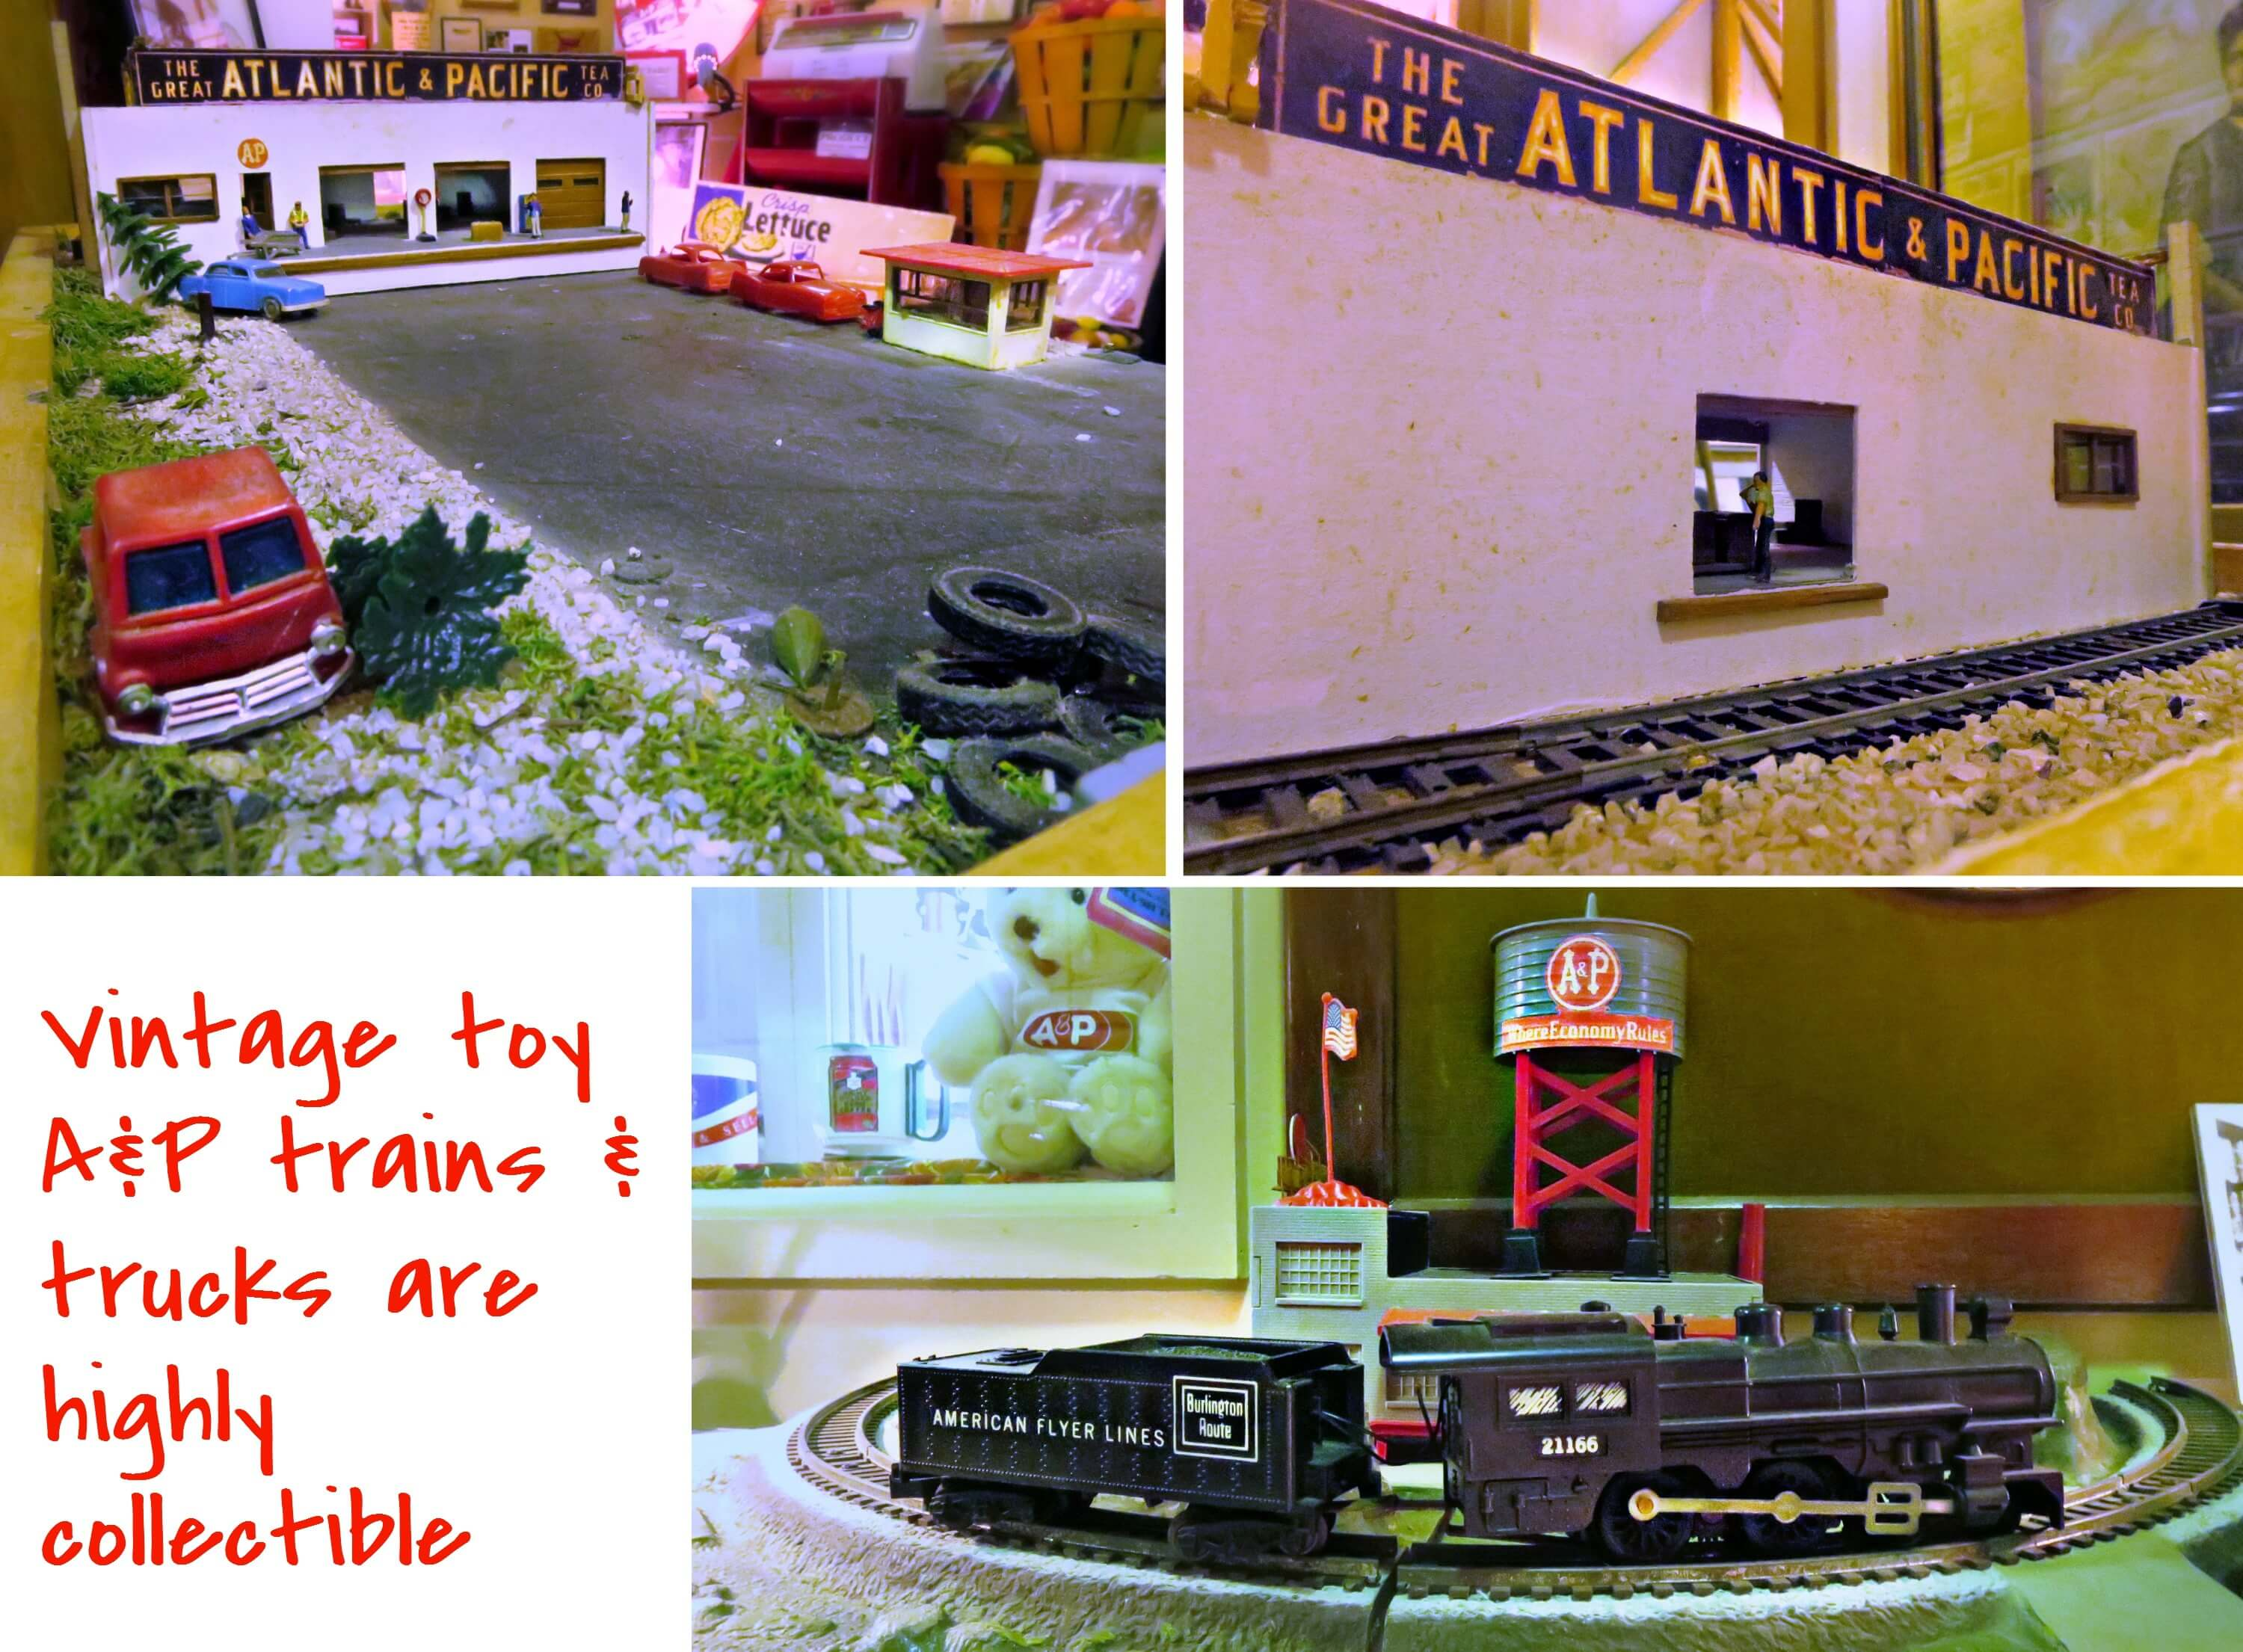 Eastfallslocal 8-7 swag collage trains collectible text